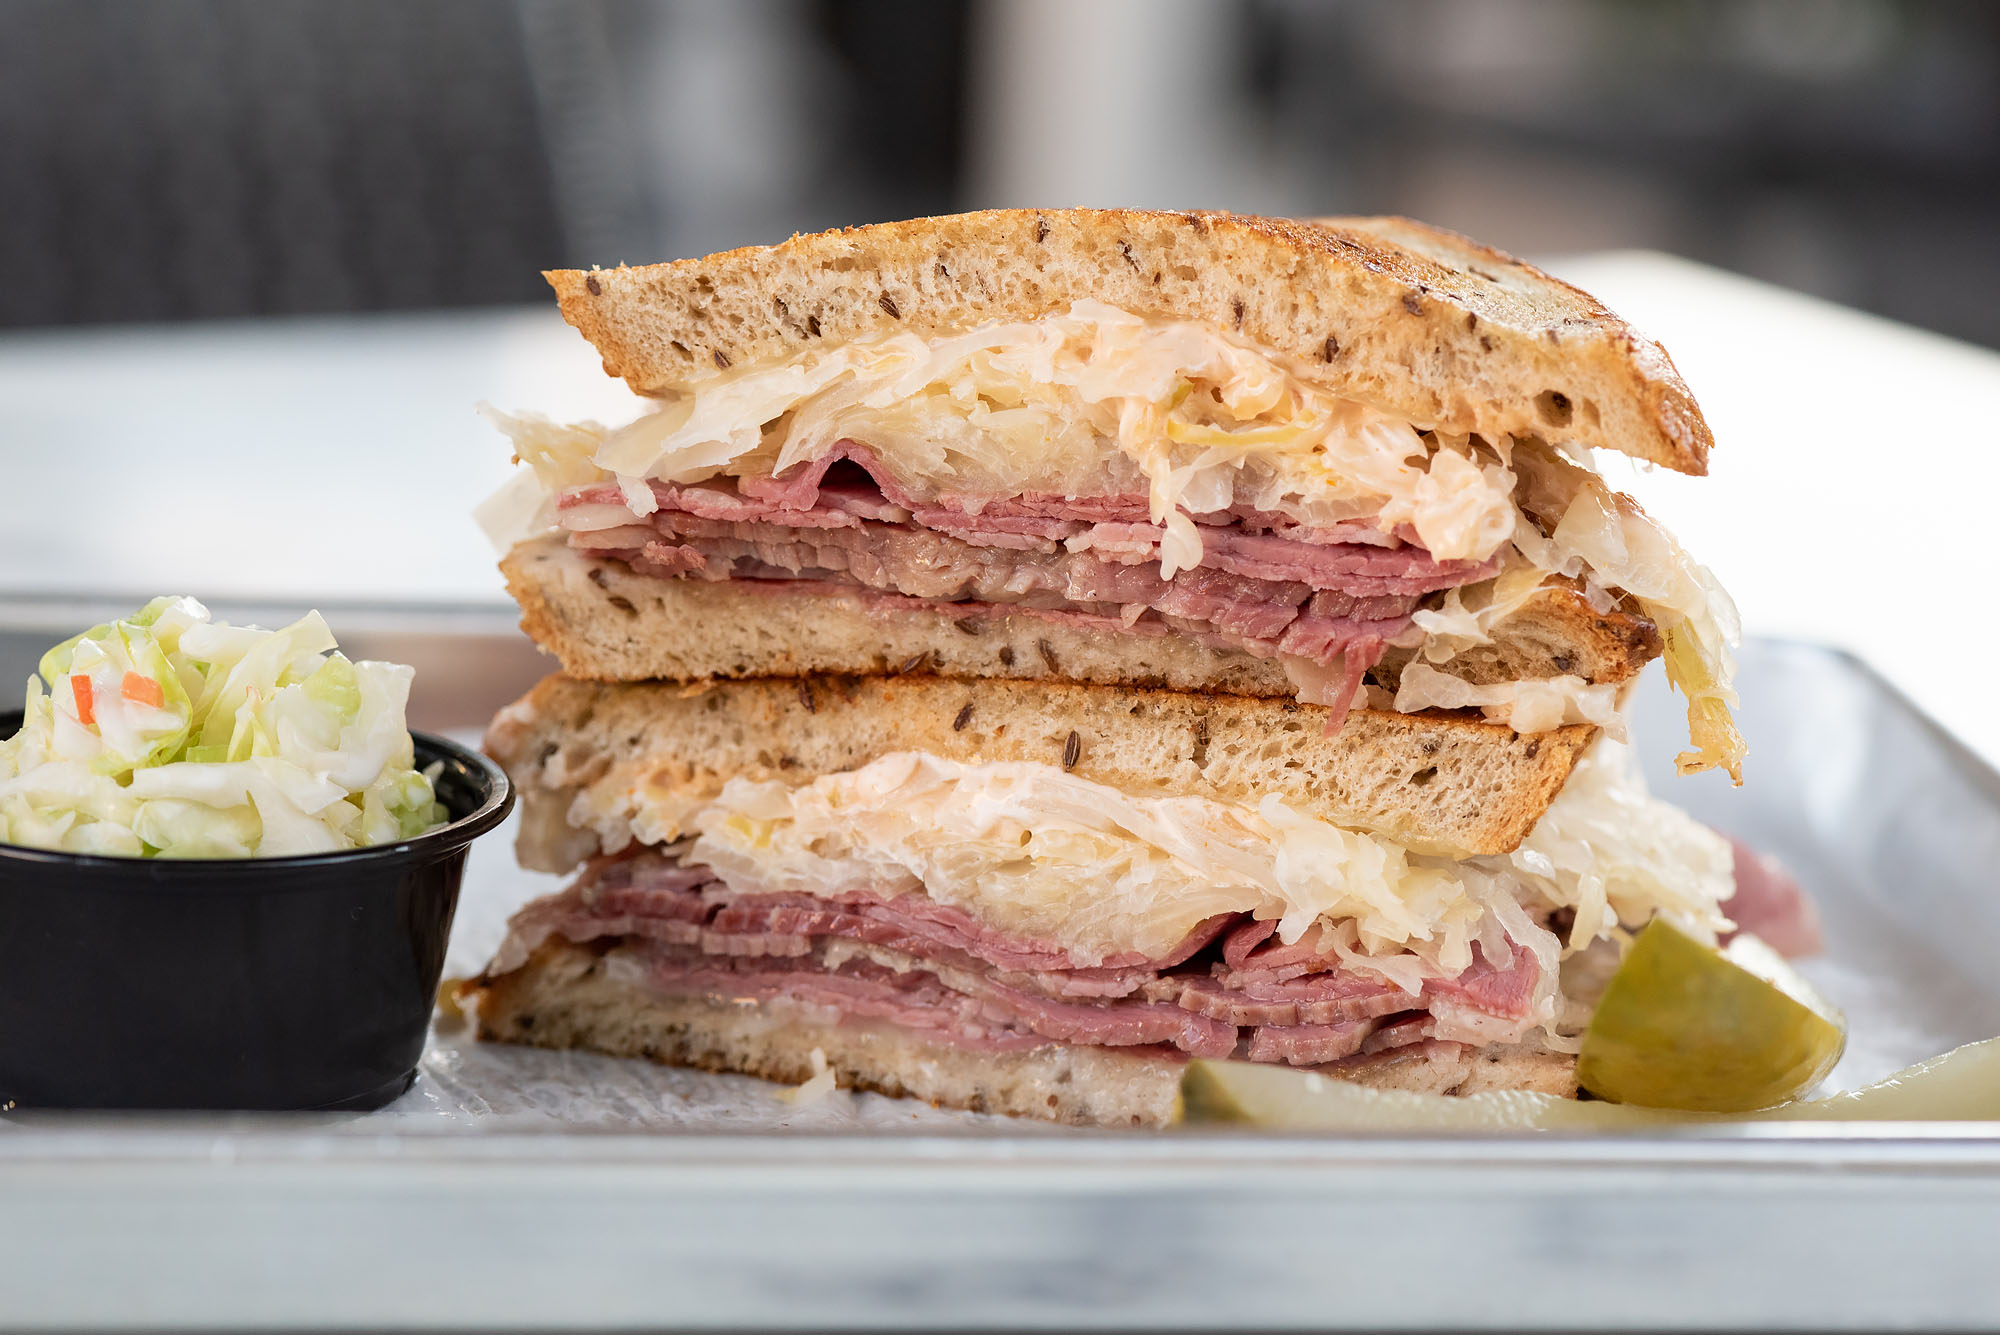 LA's Newest Jewish Deli Comes From the Legendary Langer's Family Legacy